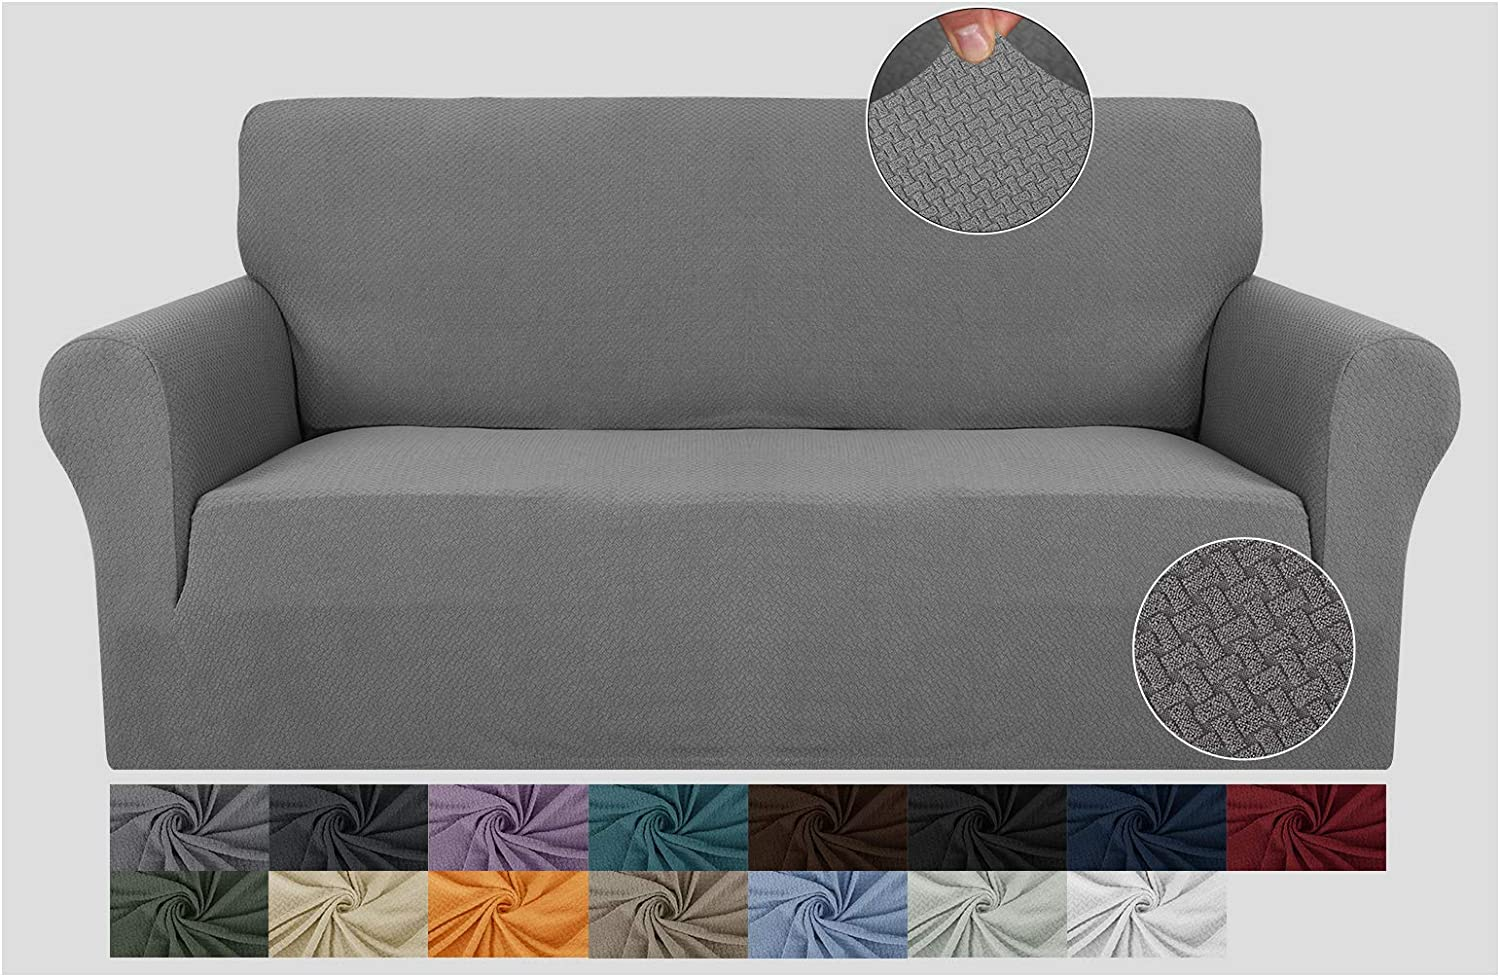 JIVINER Super Stretch 1 Piece Sofa Covers for 3 Cushion Couch Newest Jacquard Non Slip Sofa Slipcovers Thick Couch Covers for Pets Furniture Protector with Elastic Bands (Sofa, Light Gray)